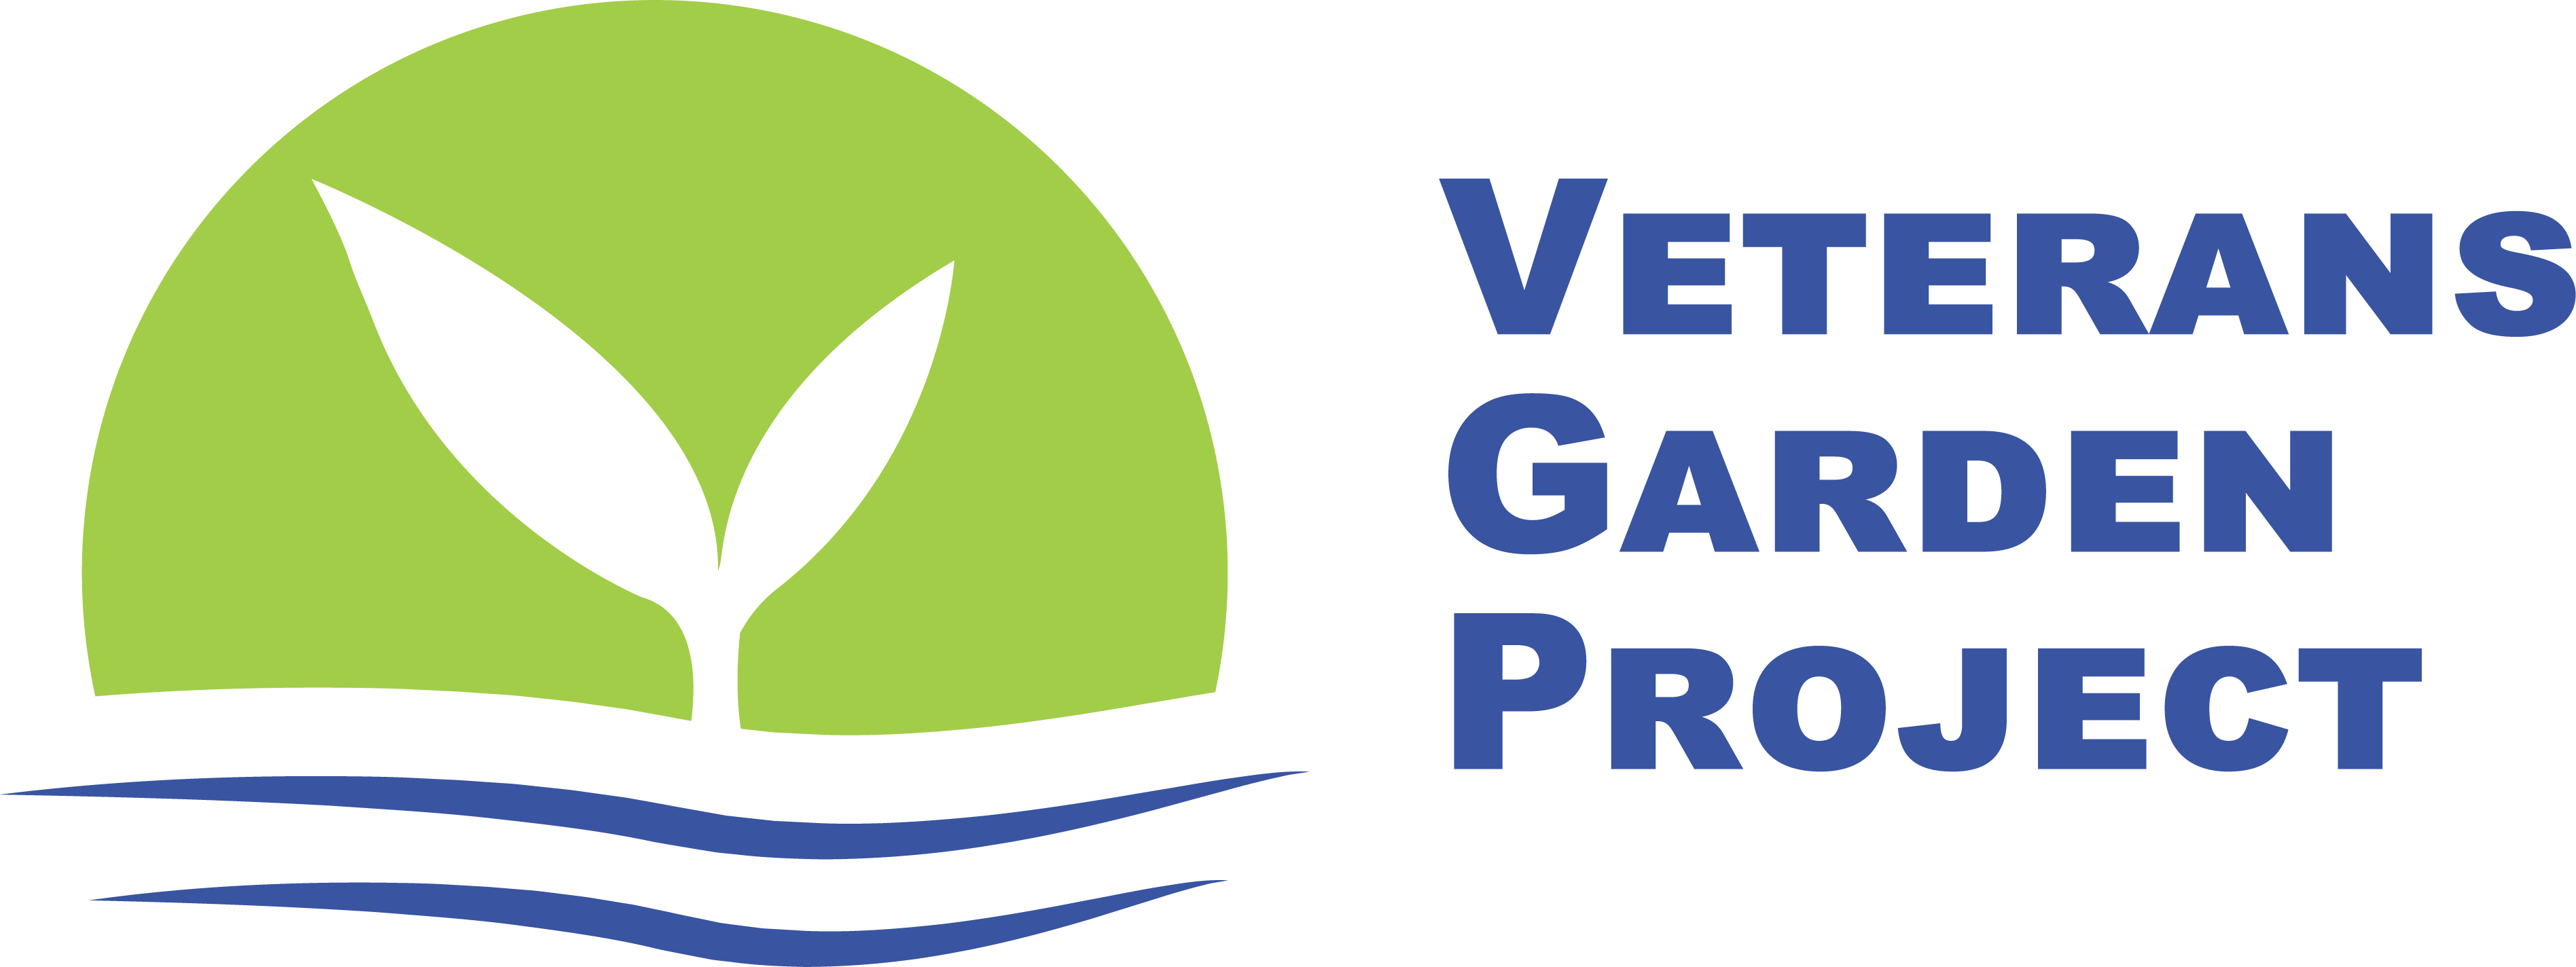 Veterans Garden Project logo